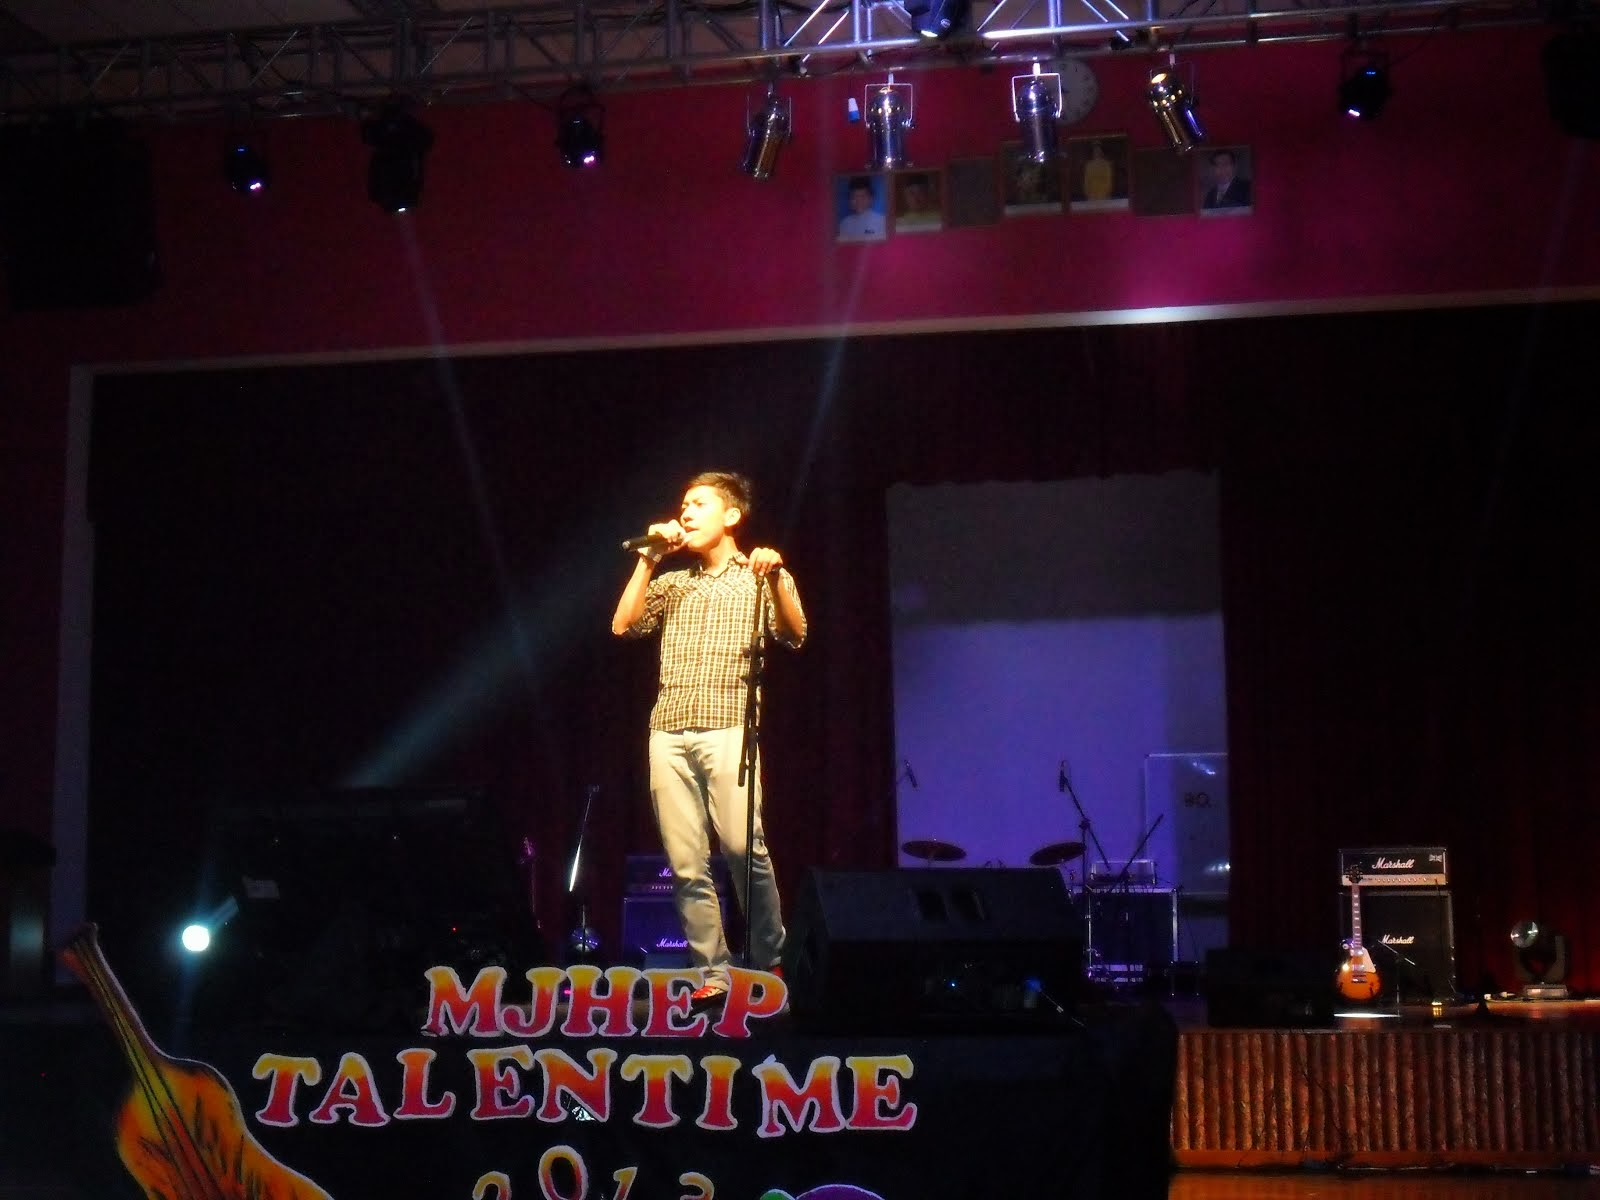 MJHEP (JAD) Talent Time 2013